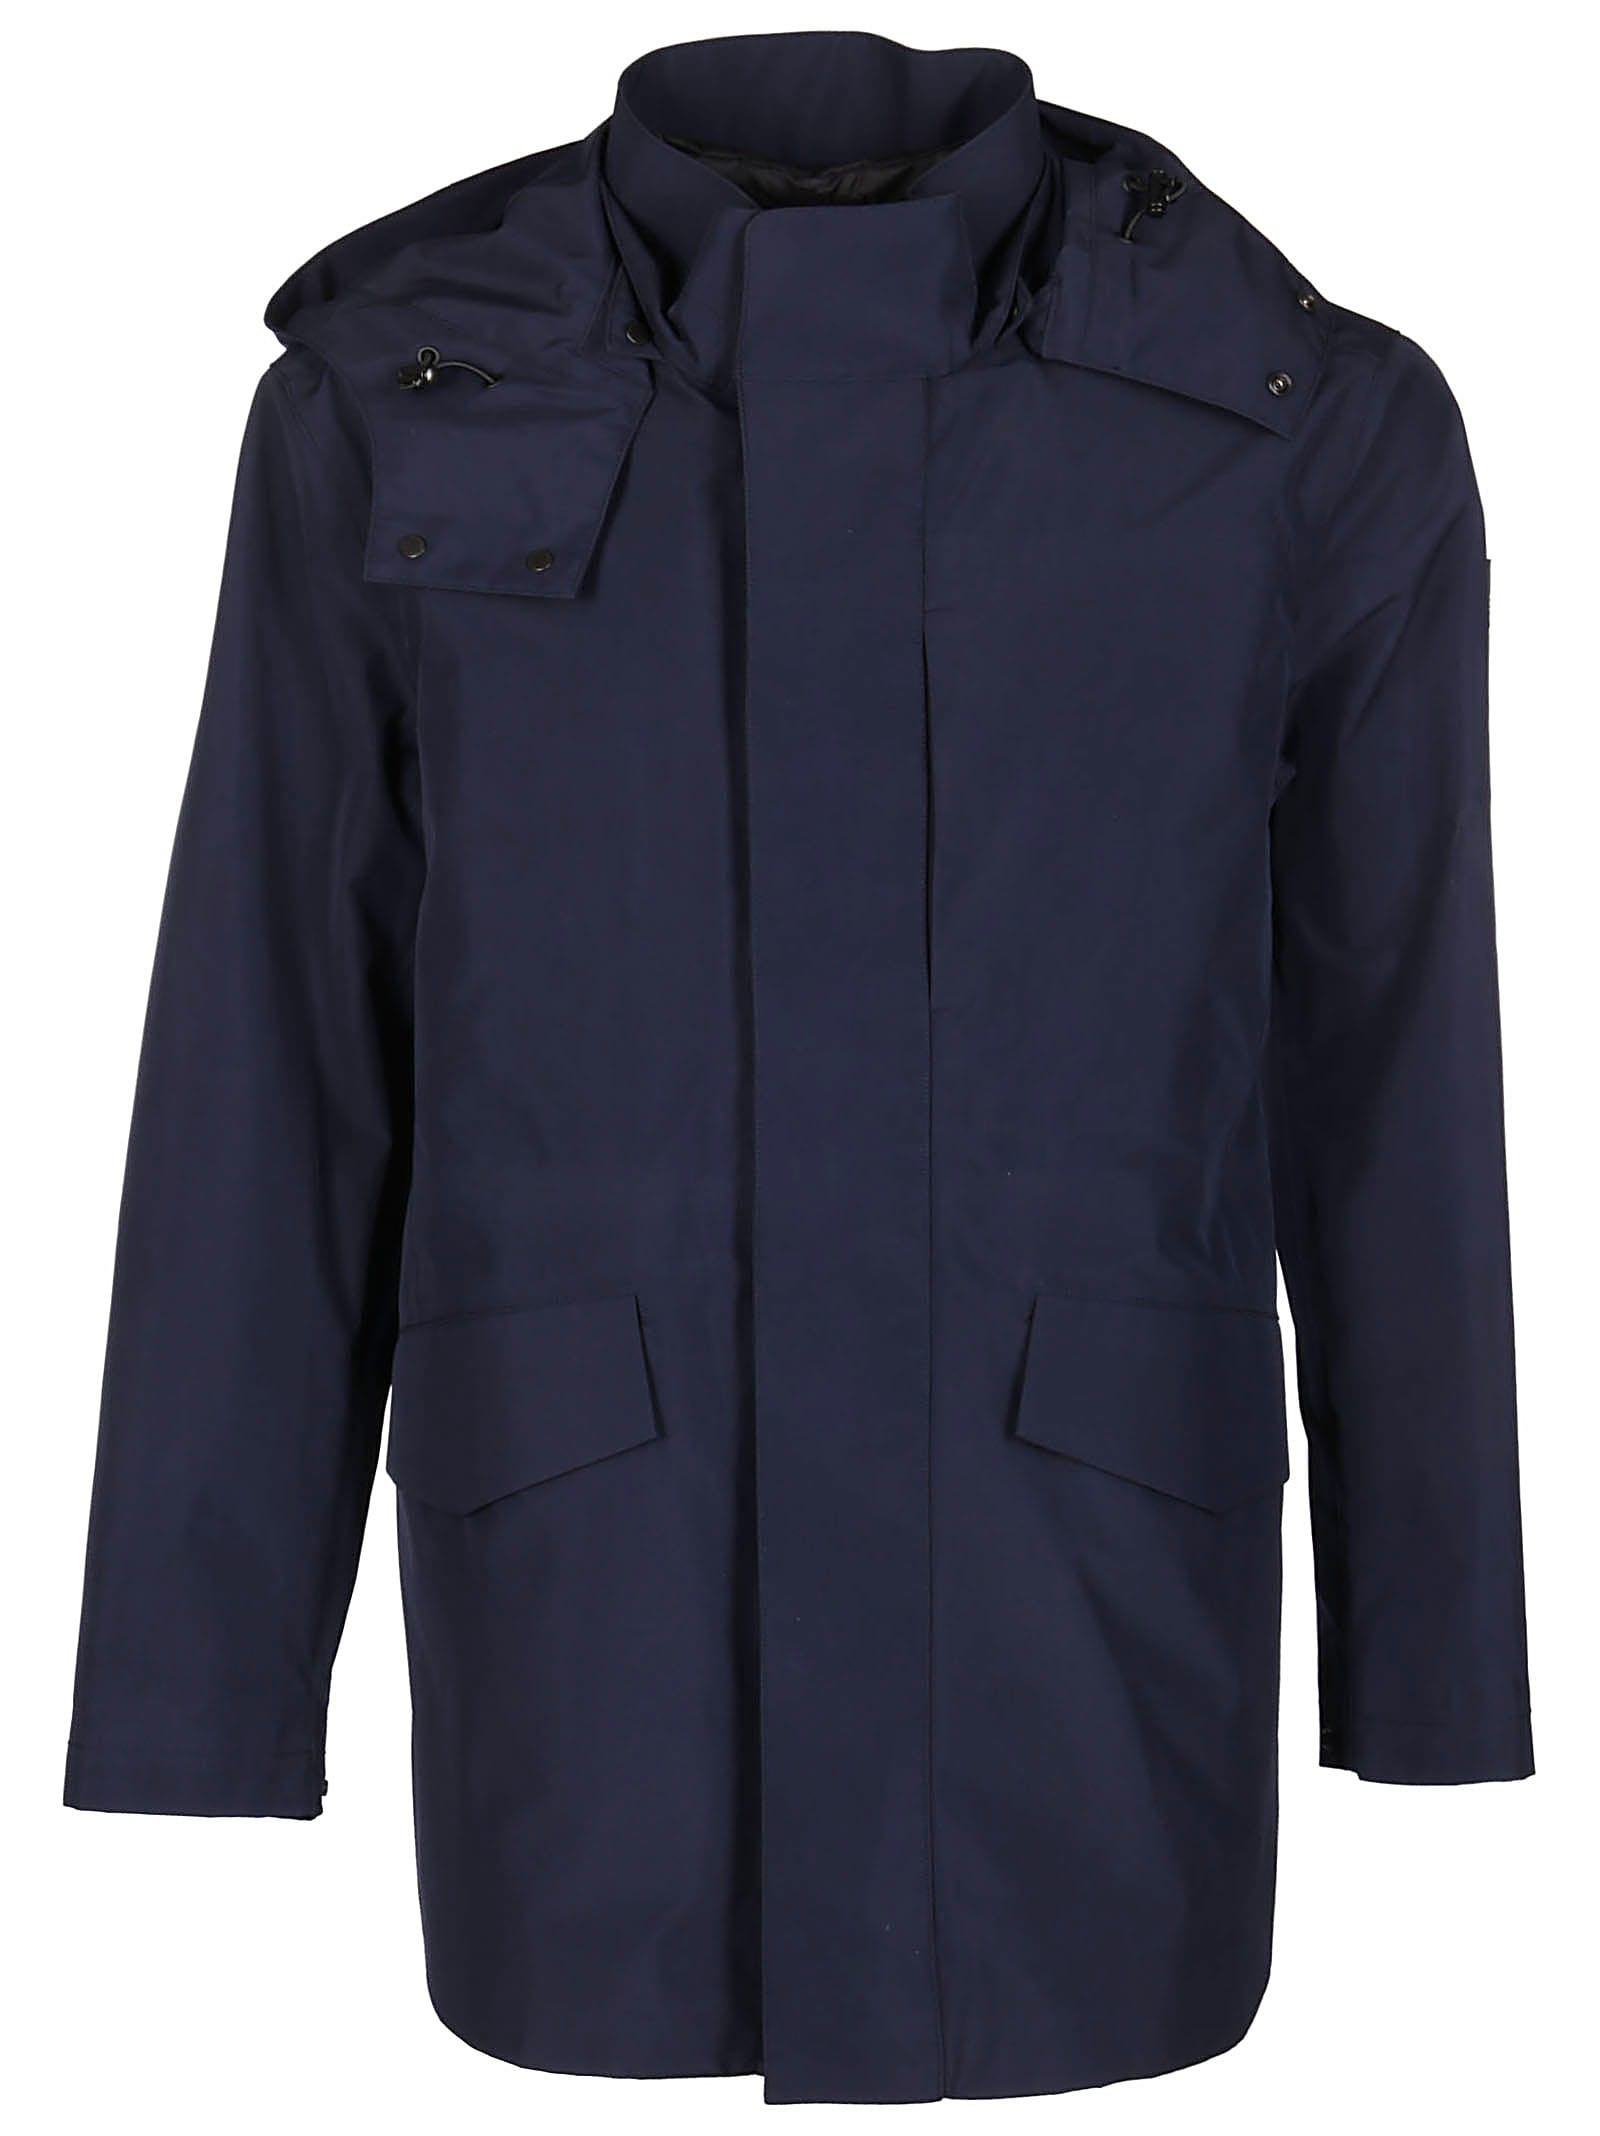 Woolrich Navy Blue Padded Coat